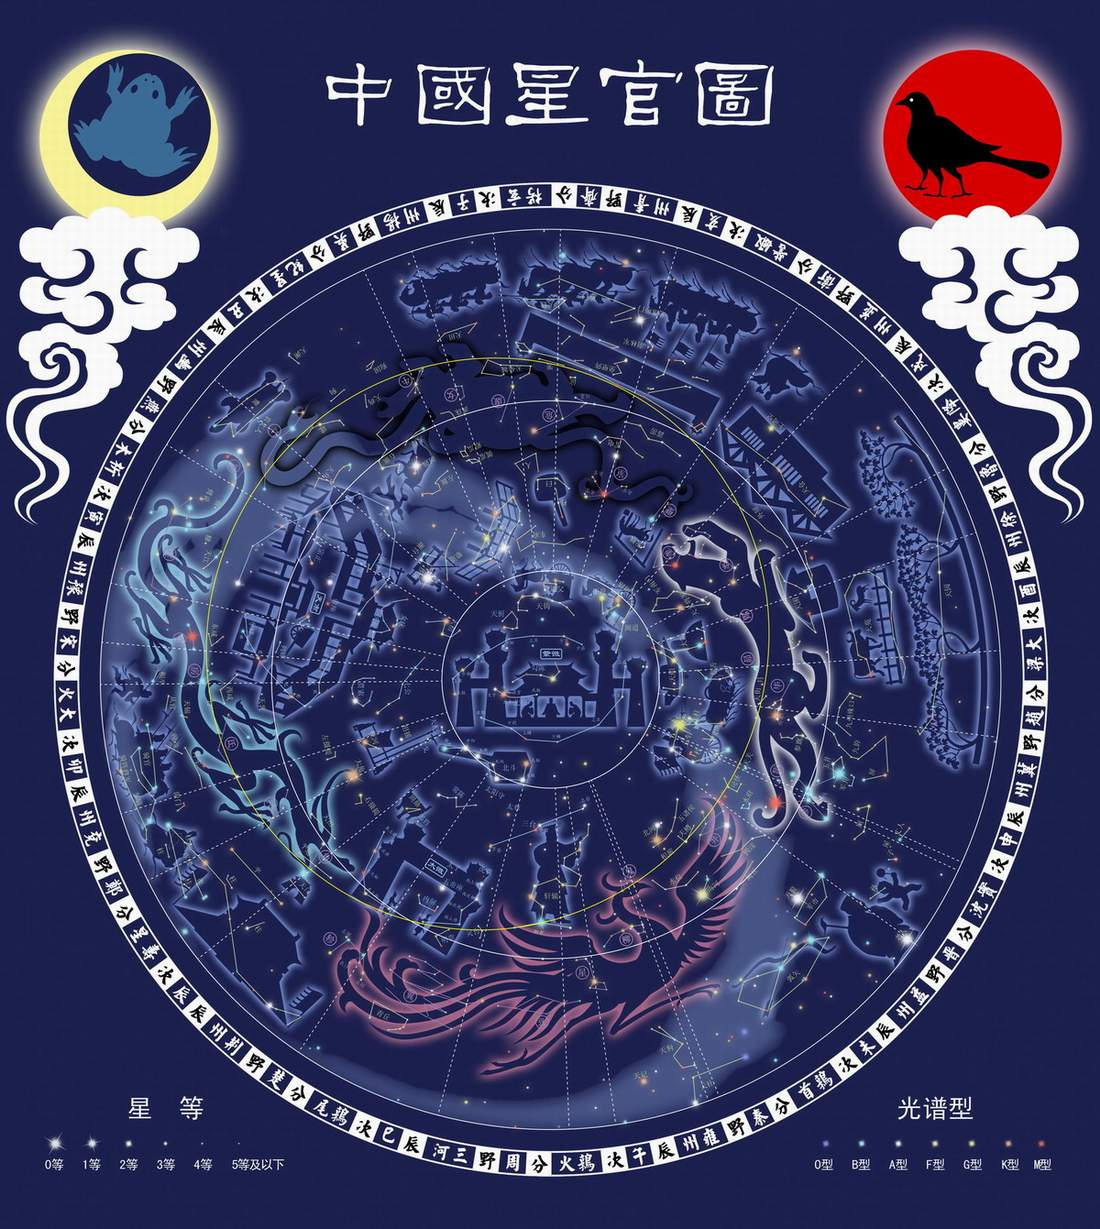 Art of silk blog chinese astrology and zodiac the heaven human chinese constellation map buycottarizona Image collections